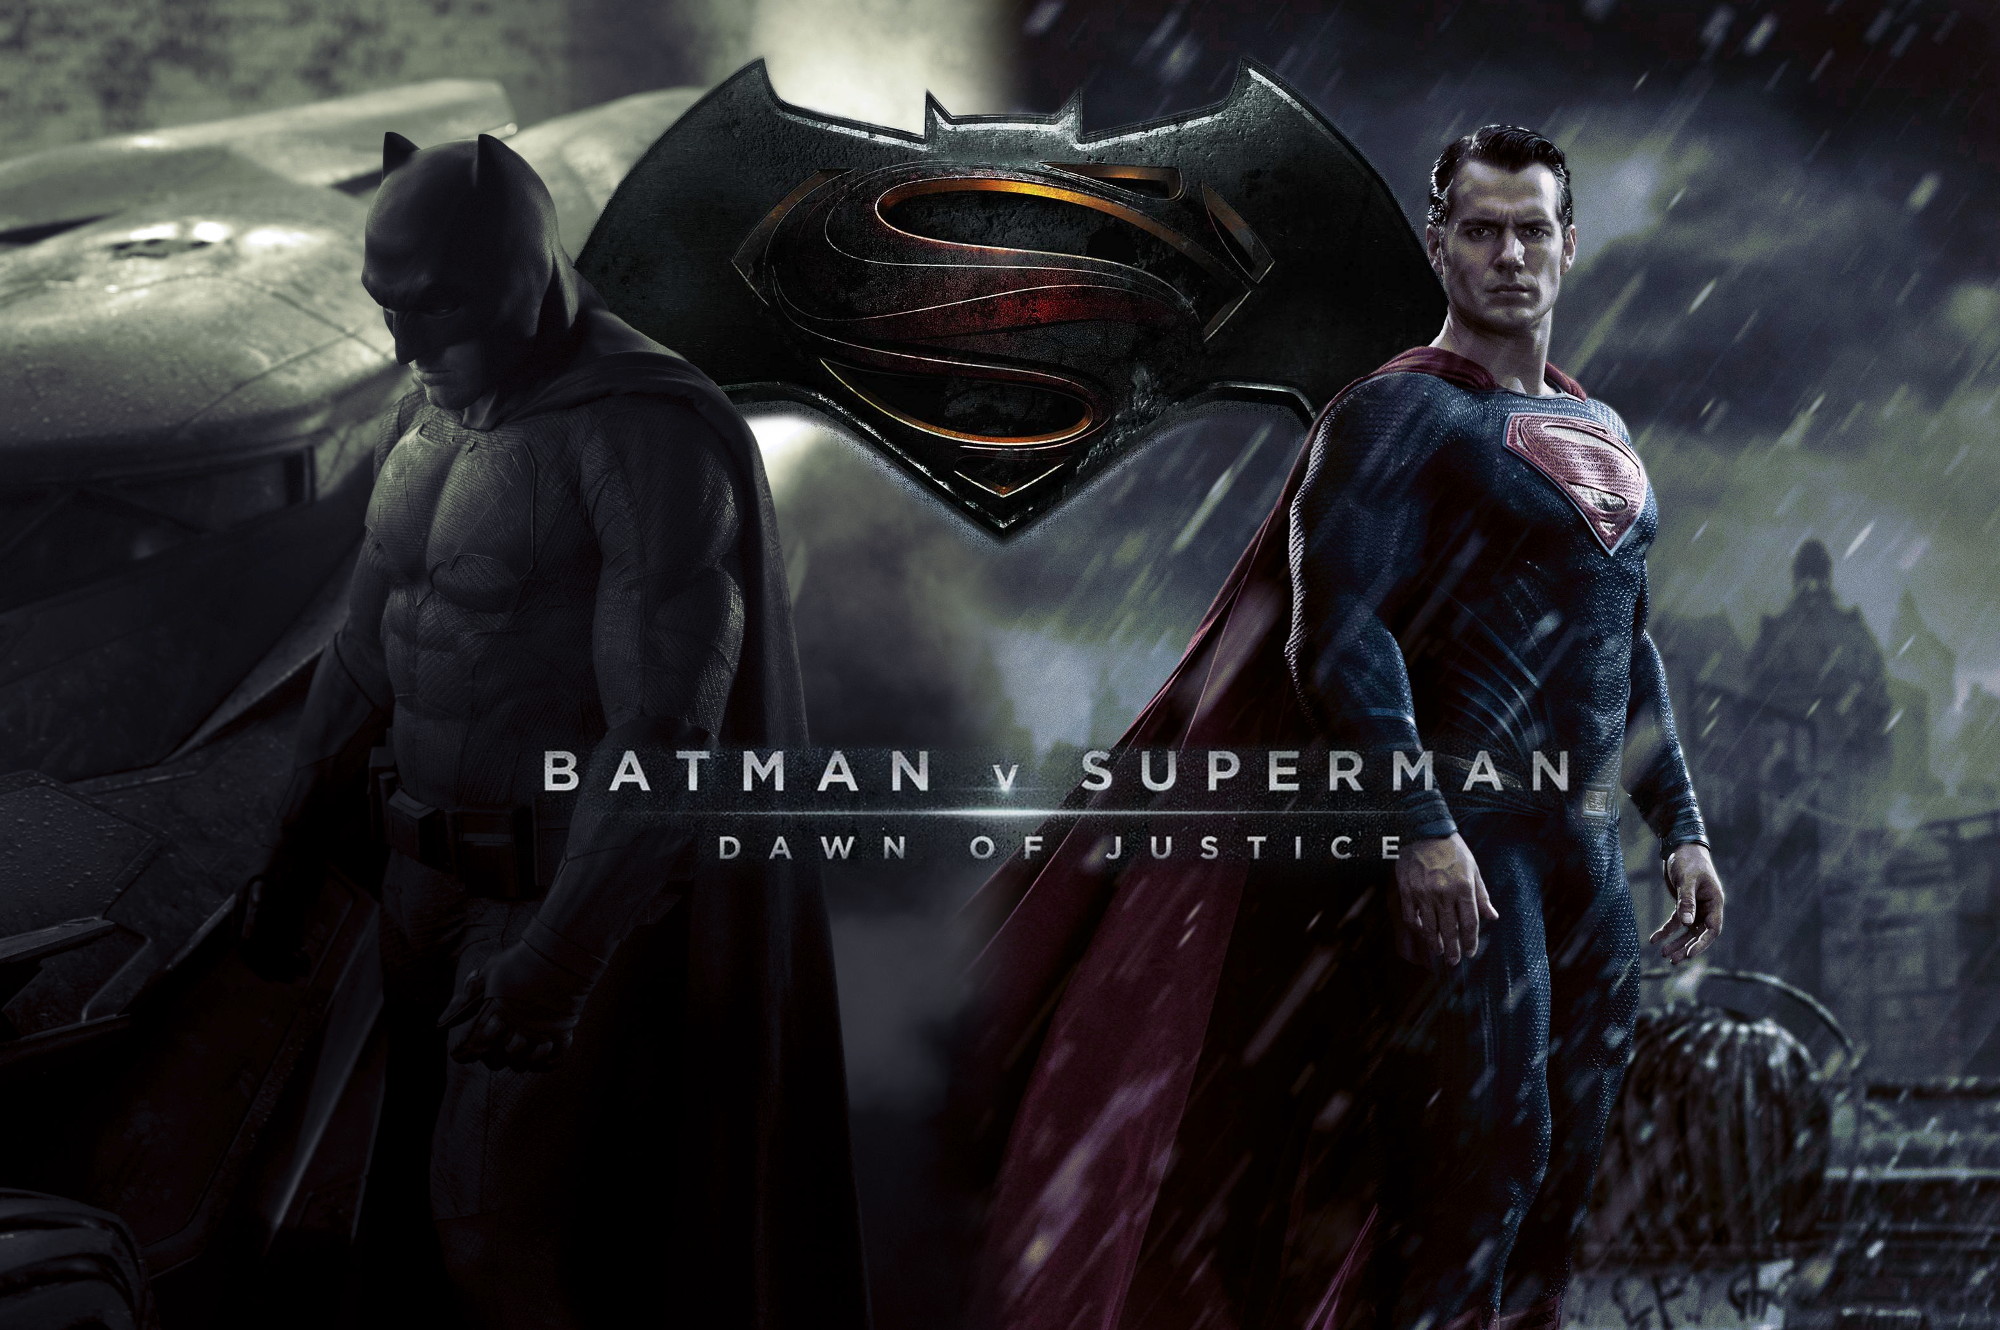 http://www.chicagonow.com/matthew-milams-films-and-music/files/2015/12/batman-vs-superman.png